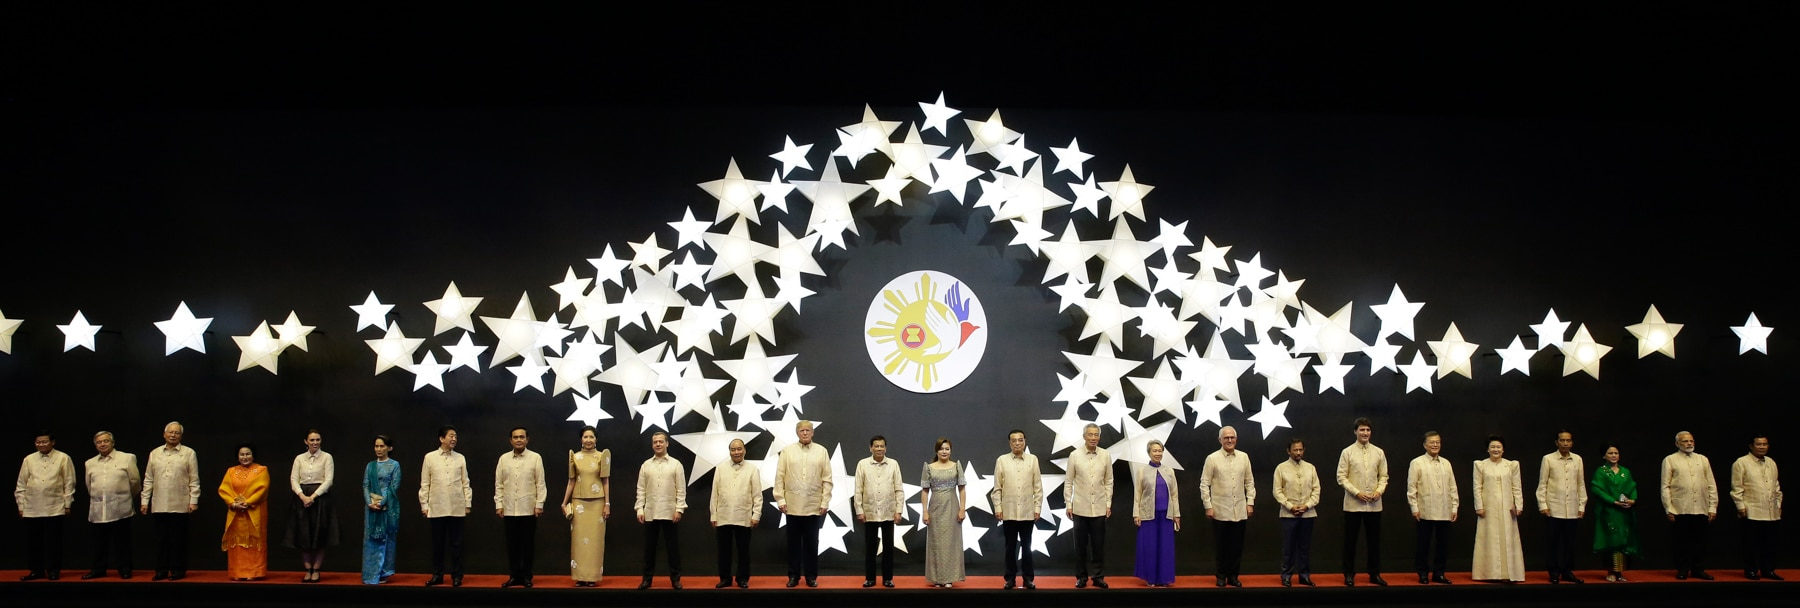 Leaders standing in front of mural of stars (© AP Images)